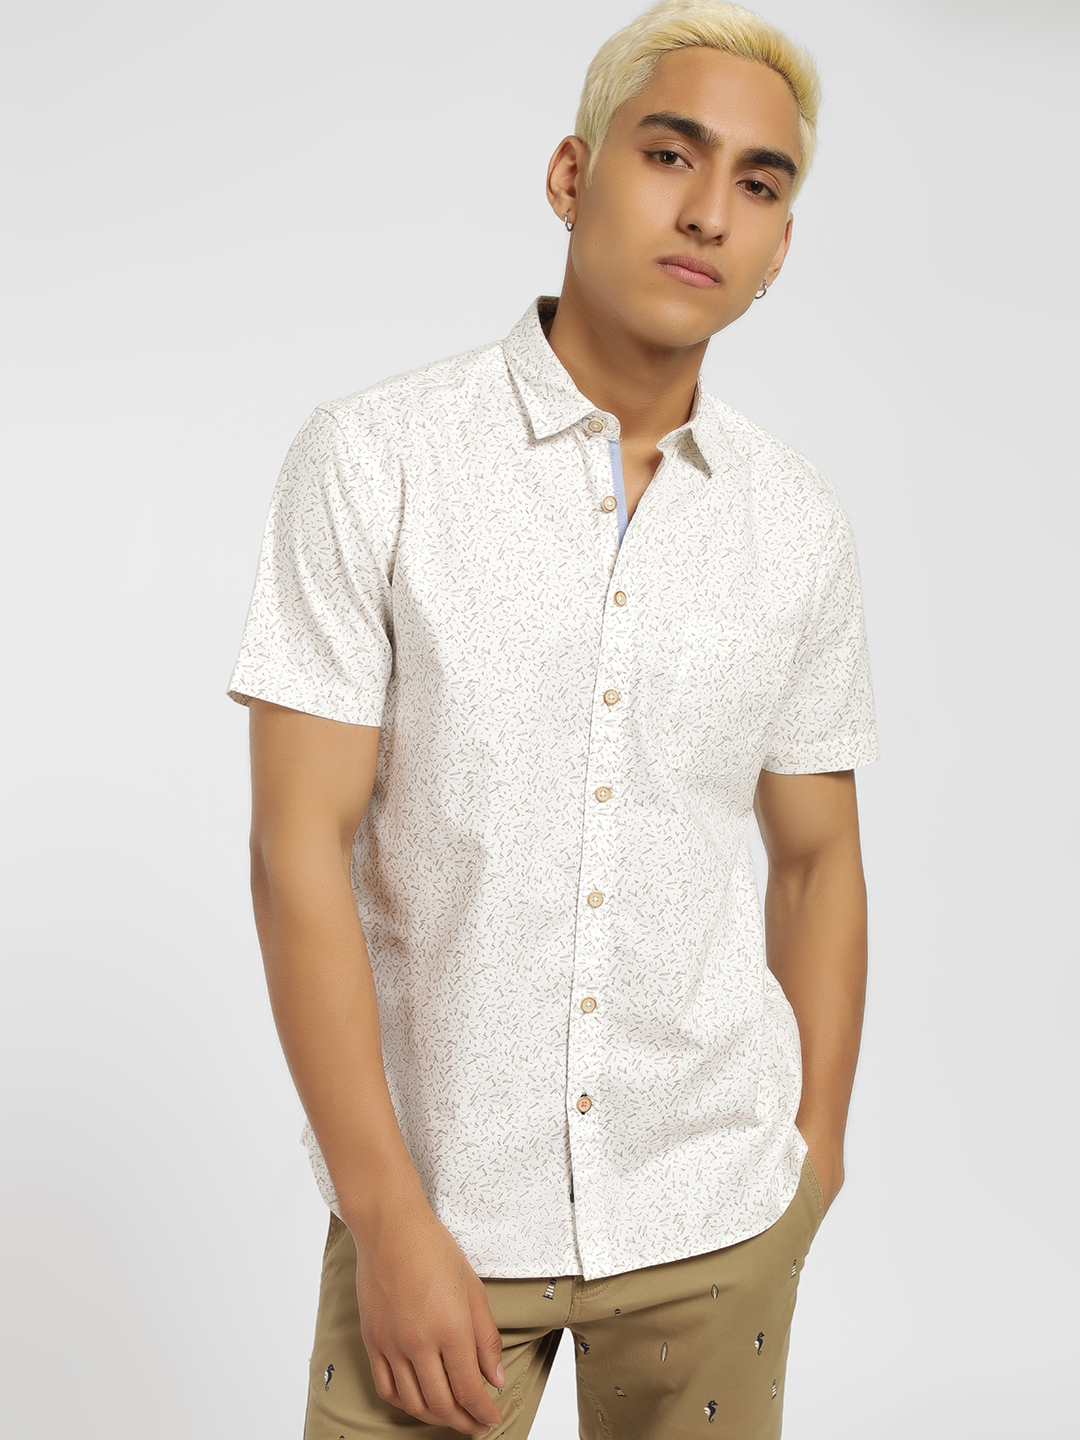 SCULLERS White Short Sleeve Printed Oxford Shirt 1